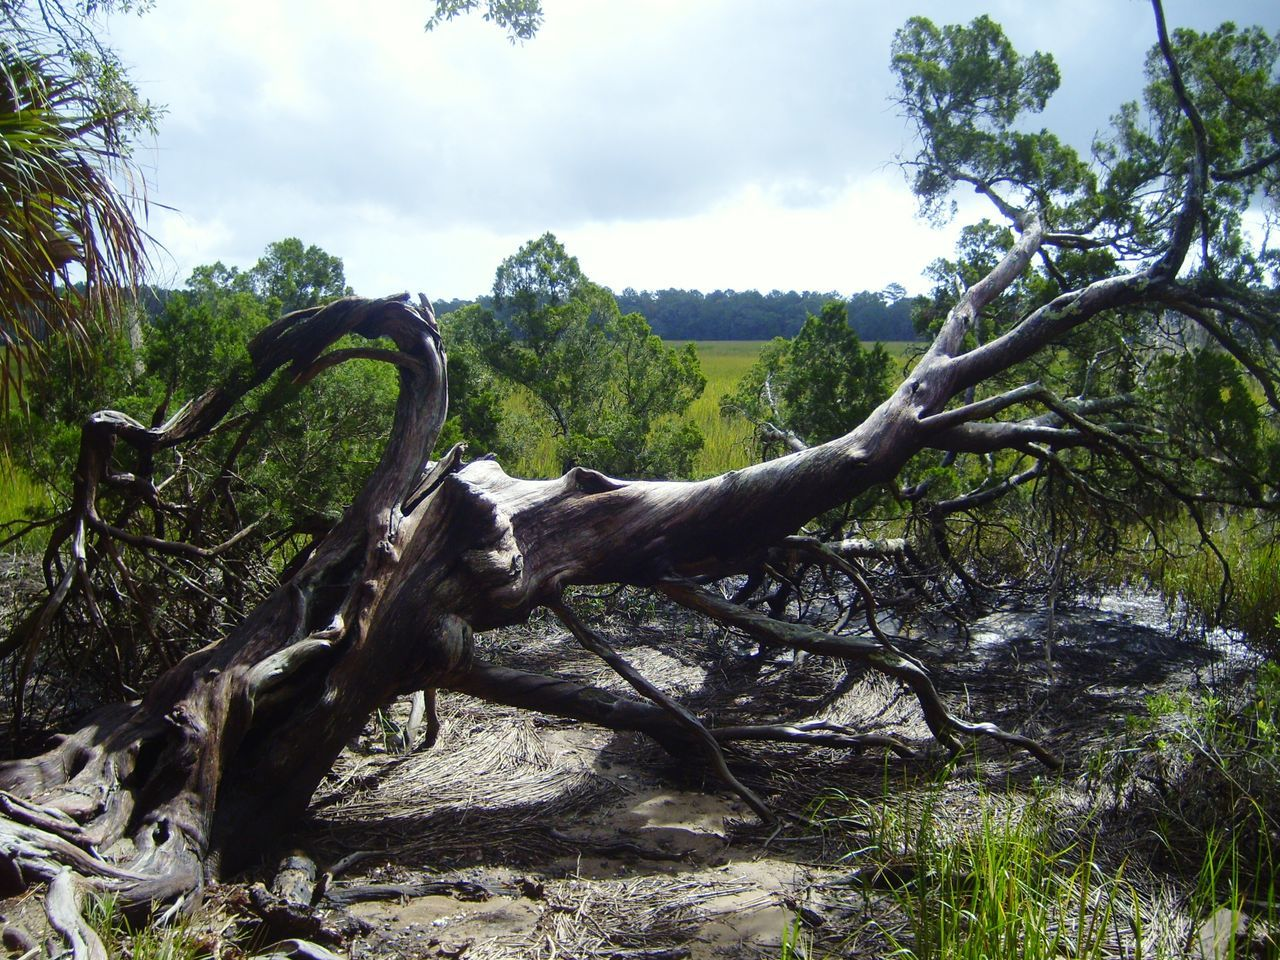 tree, nature, forest, no people, sky, outdoors, beauty in nature, day, branch, scenics, landscape, animal themes, dead tree, mammal